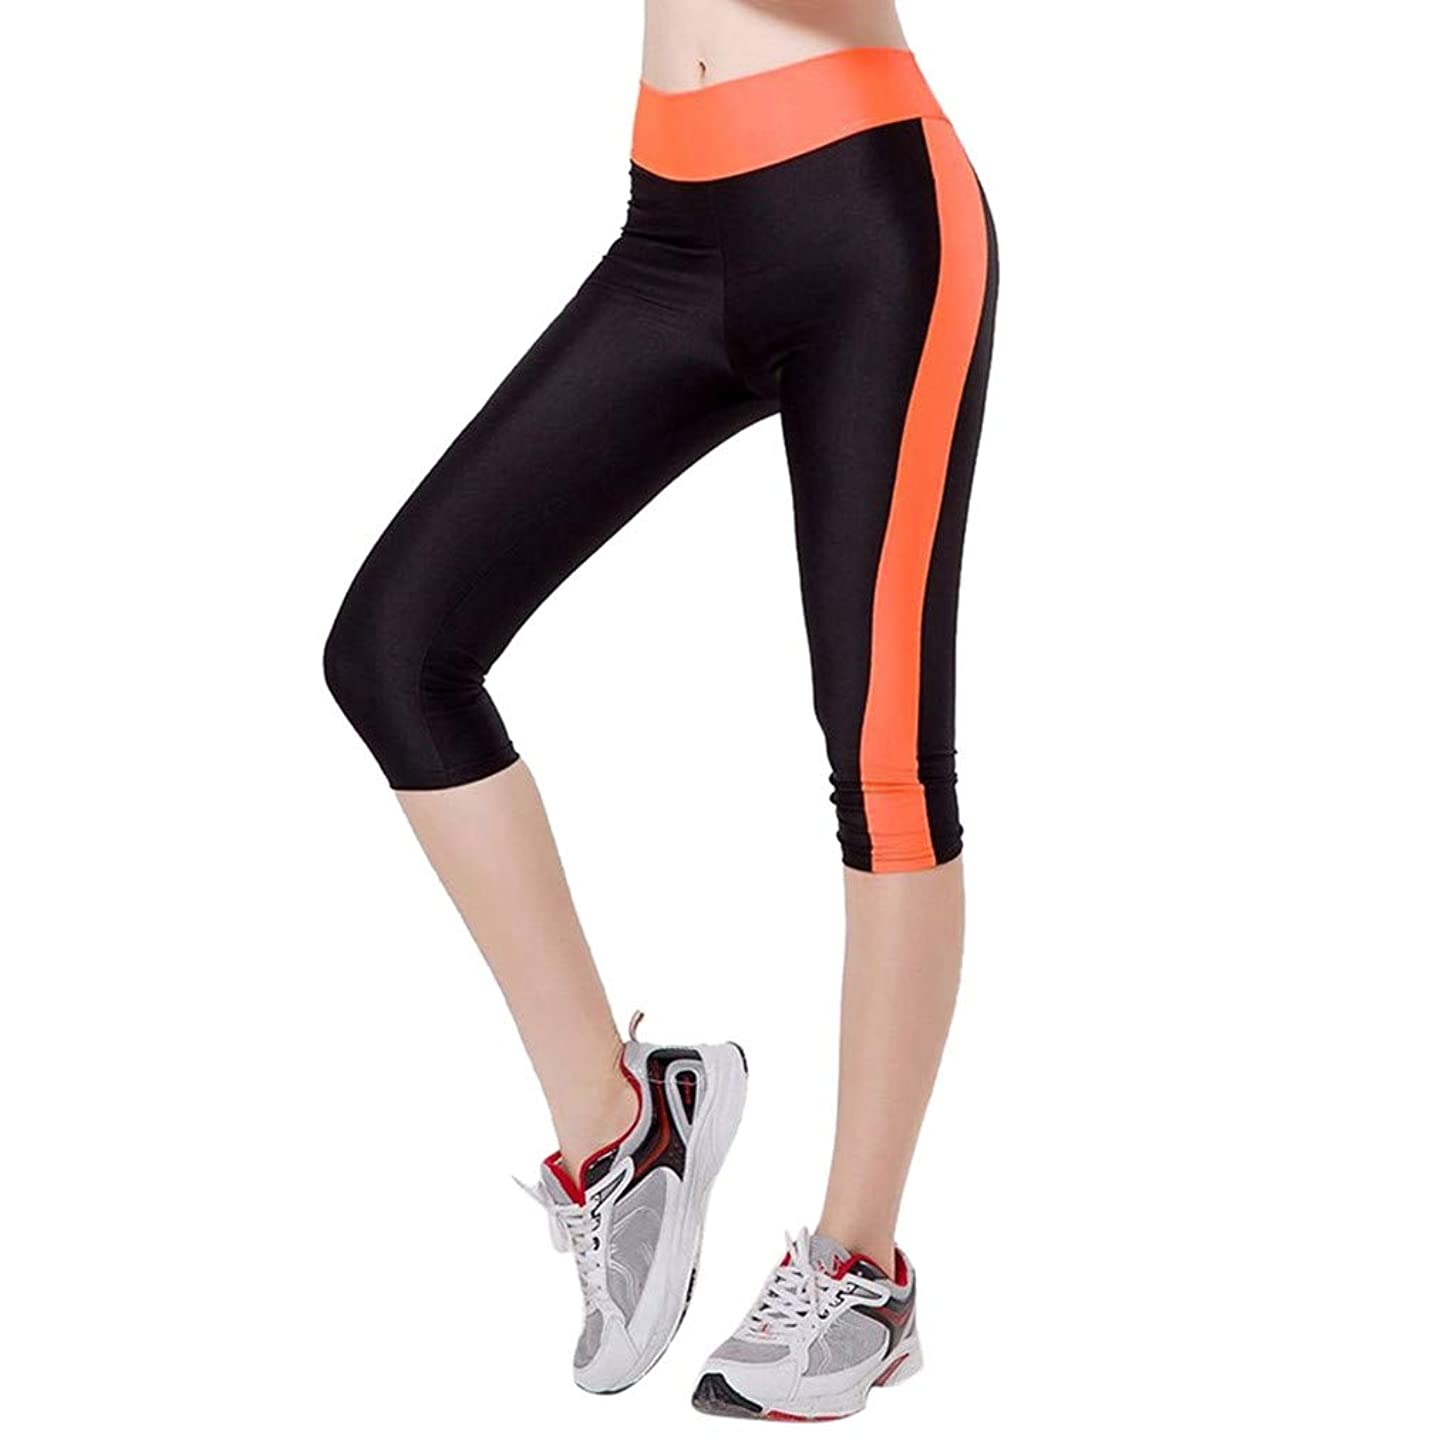 Women High Waist Out Pocket Yoga Pants, Gym Workout Running Stretch Yoga Leggings with Pockets